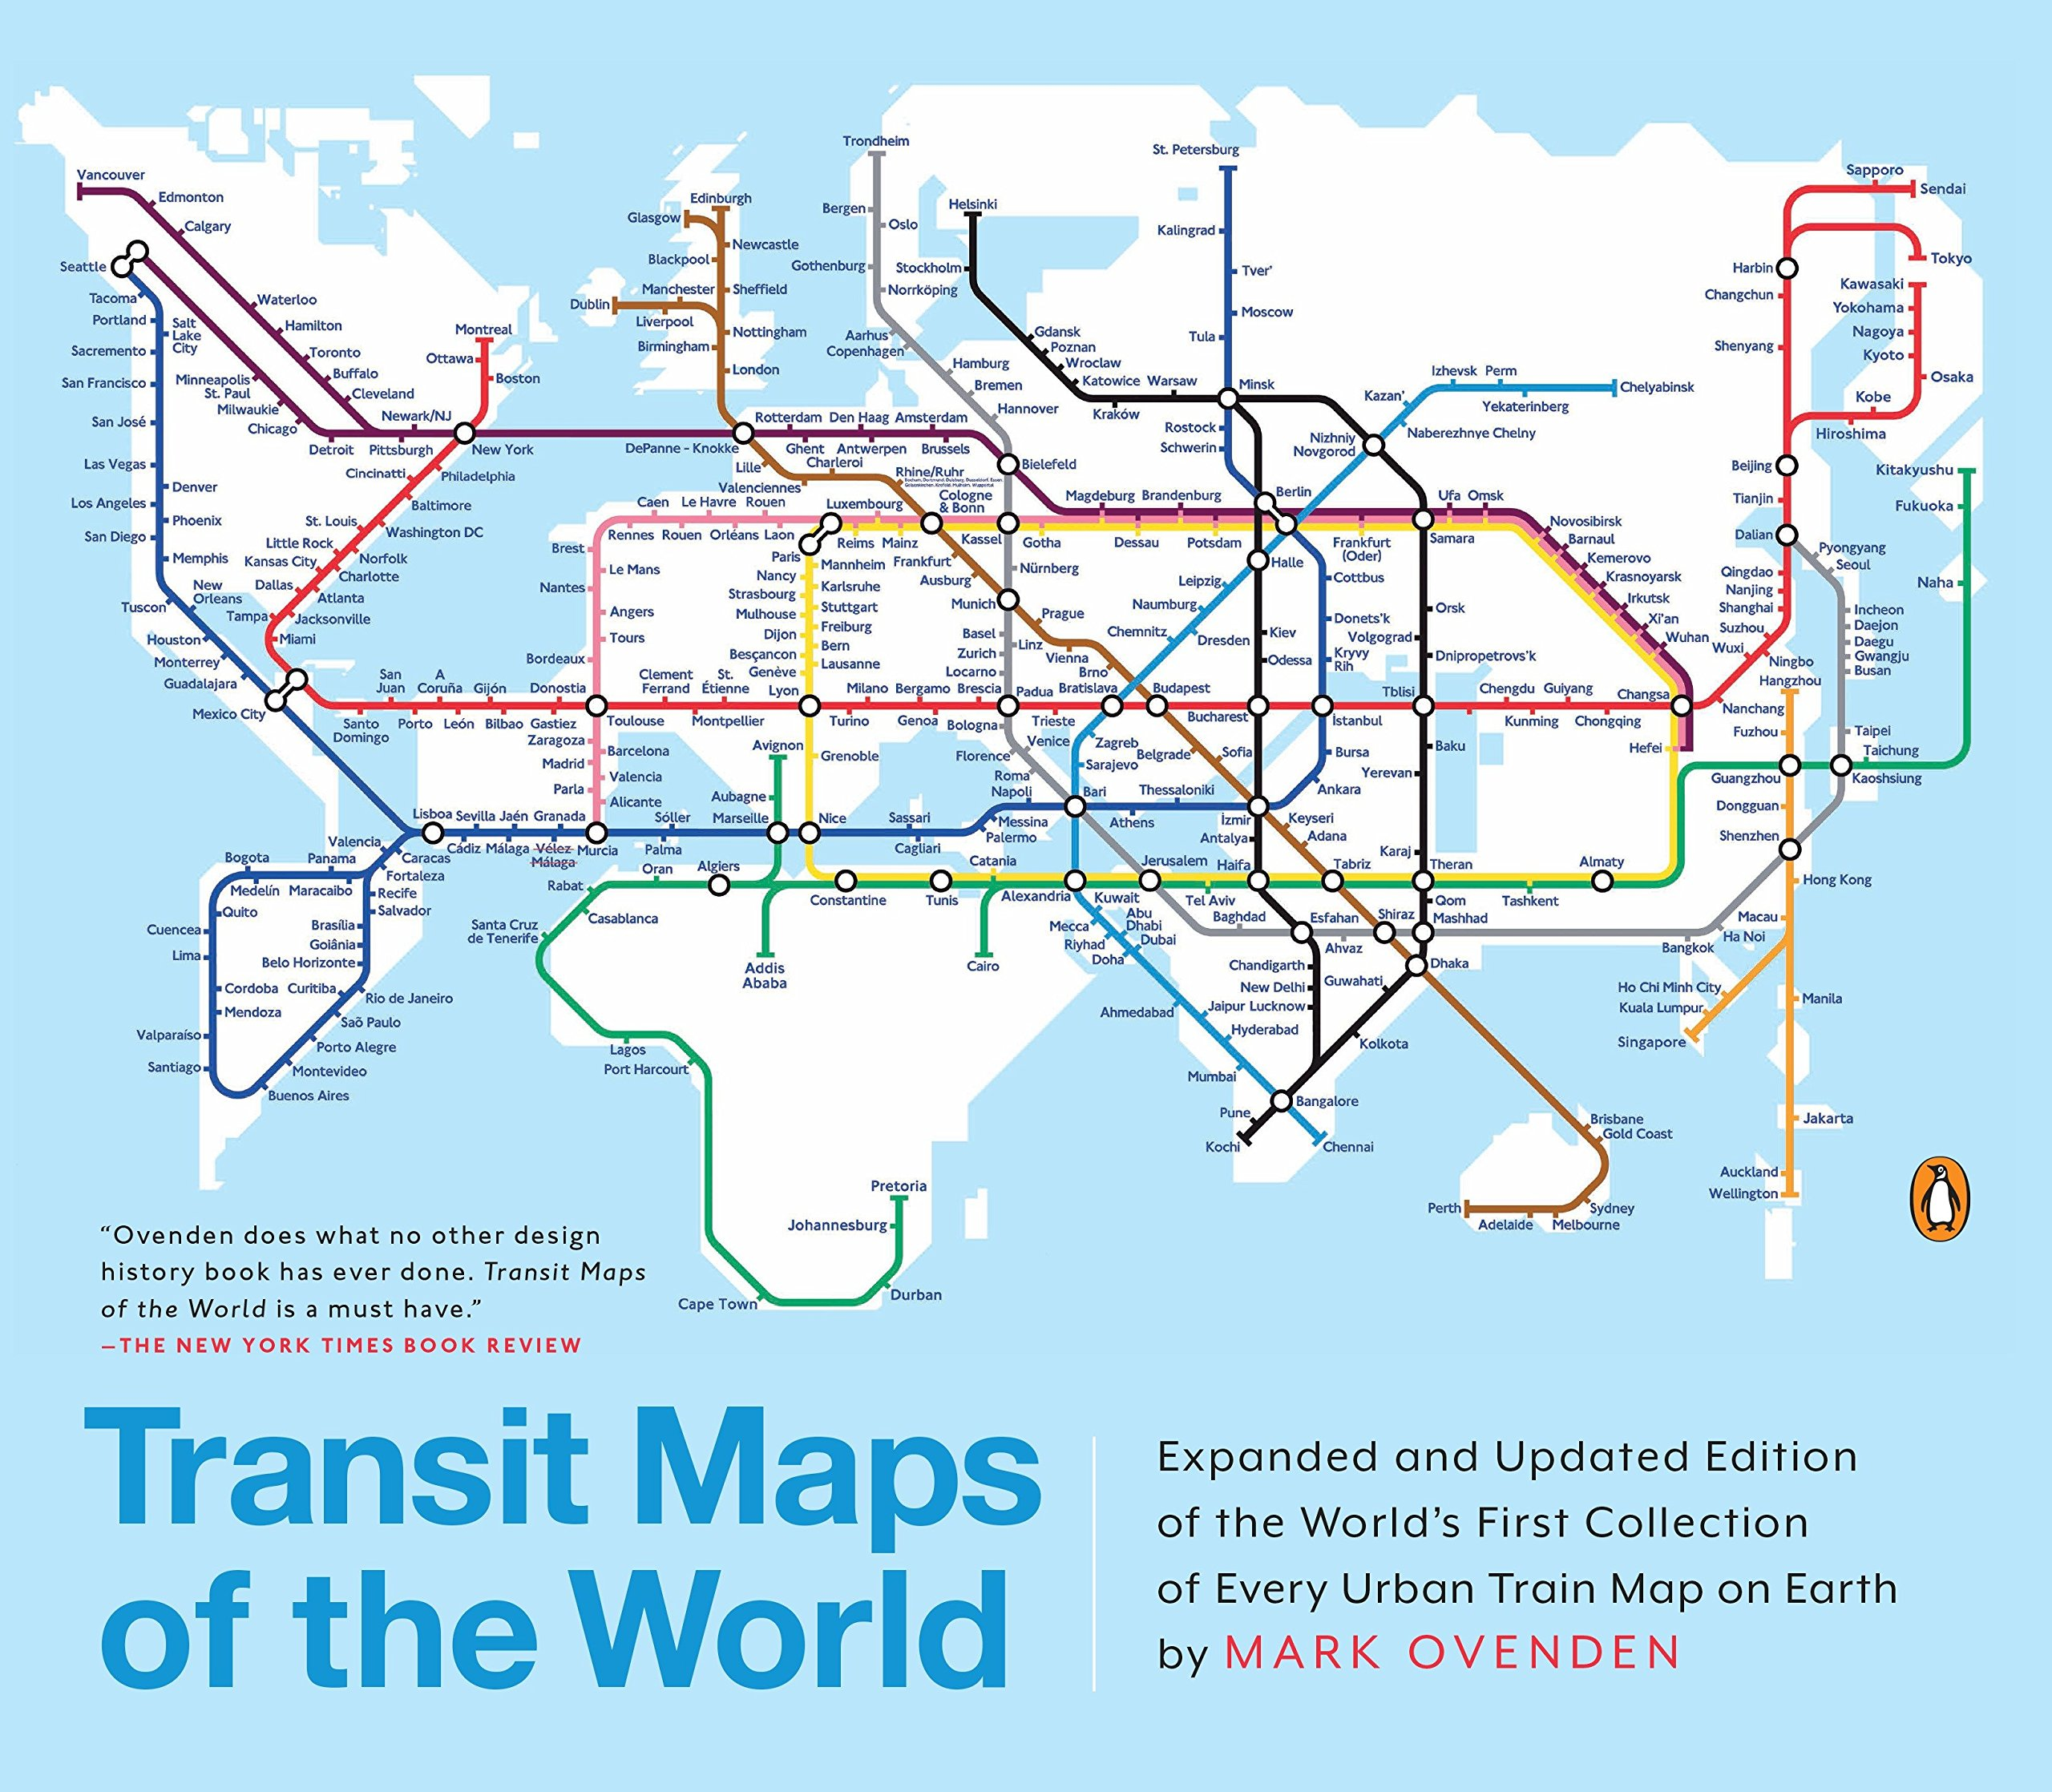 amazon transit maps of the world expanded and updated edition of